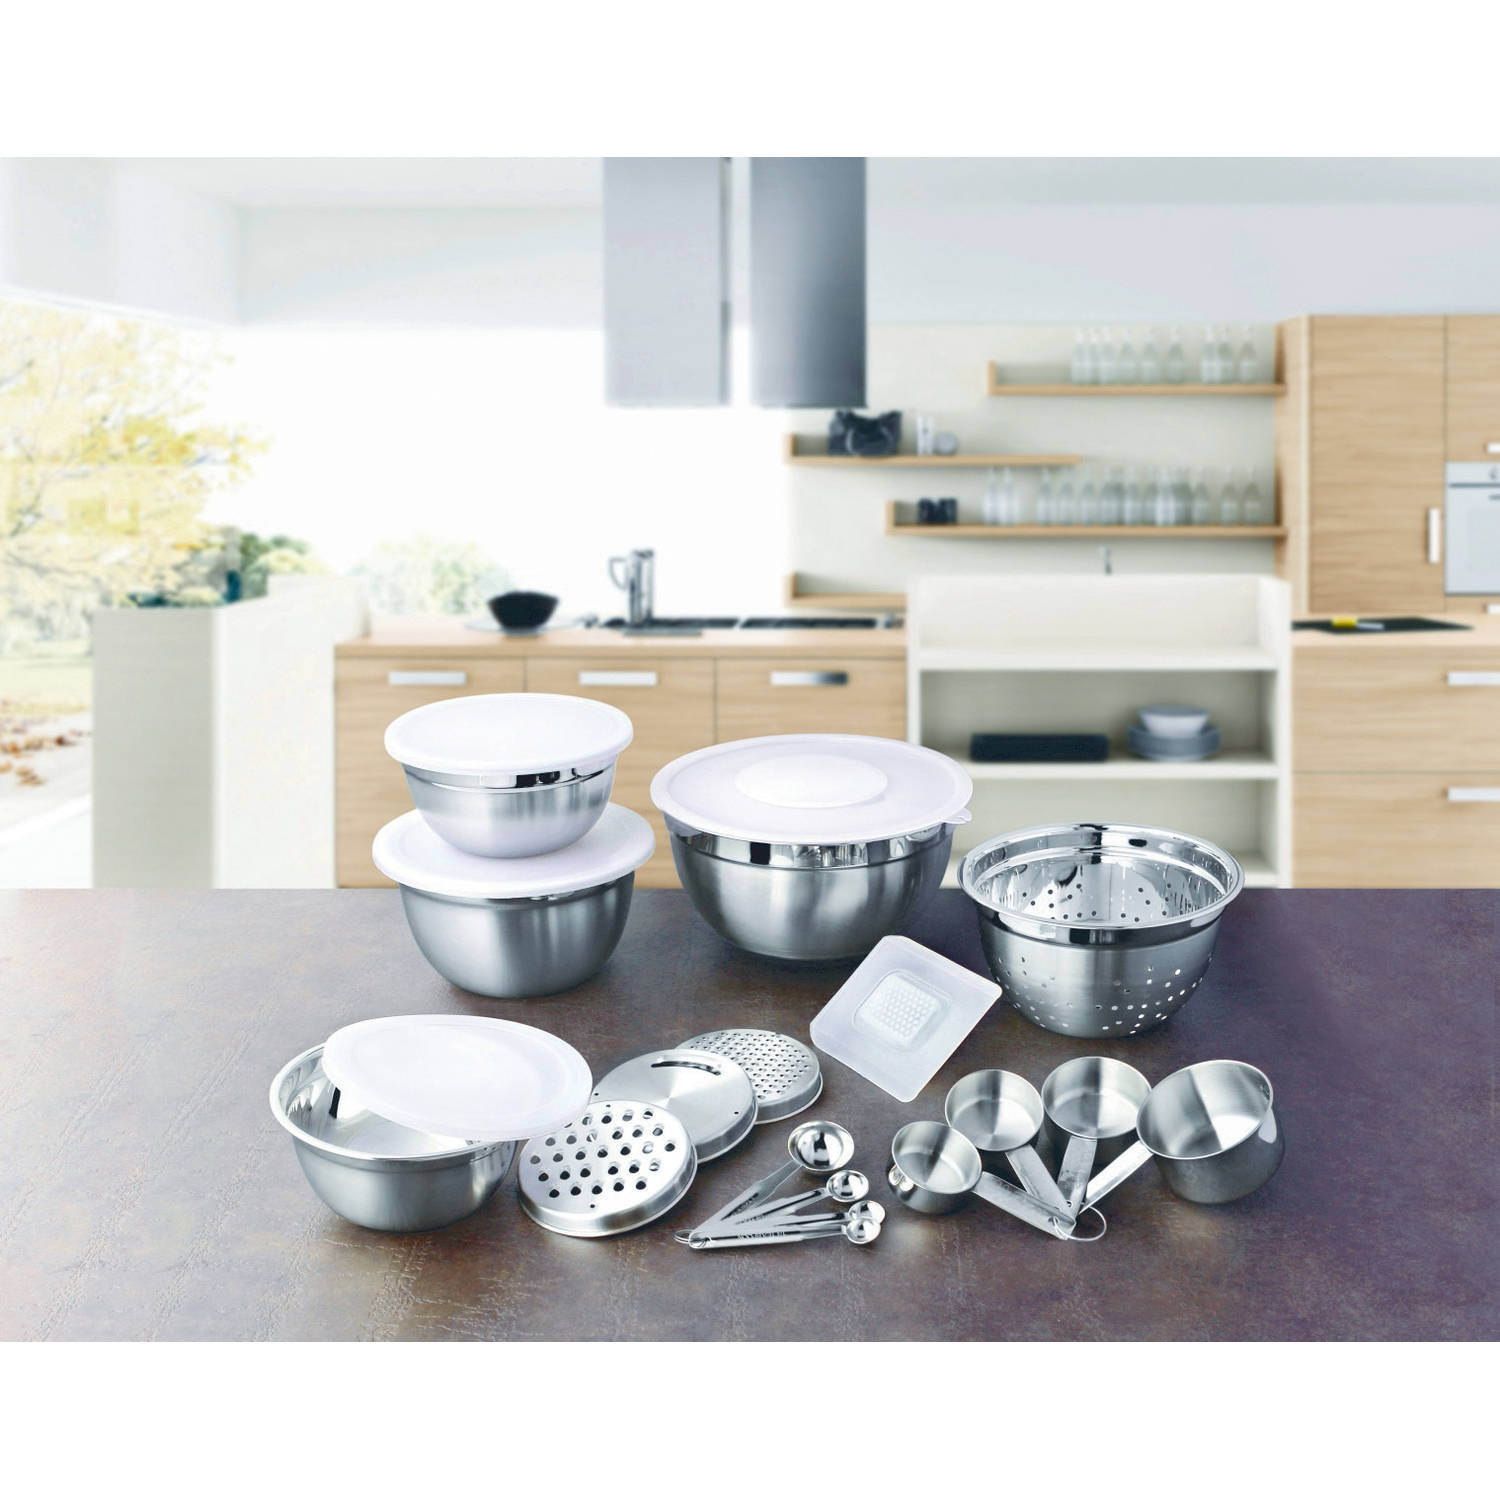 Better Homes And Garden 21 Piece Prep And Store Kitchen Set